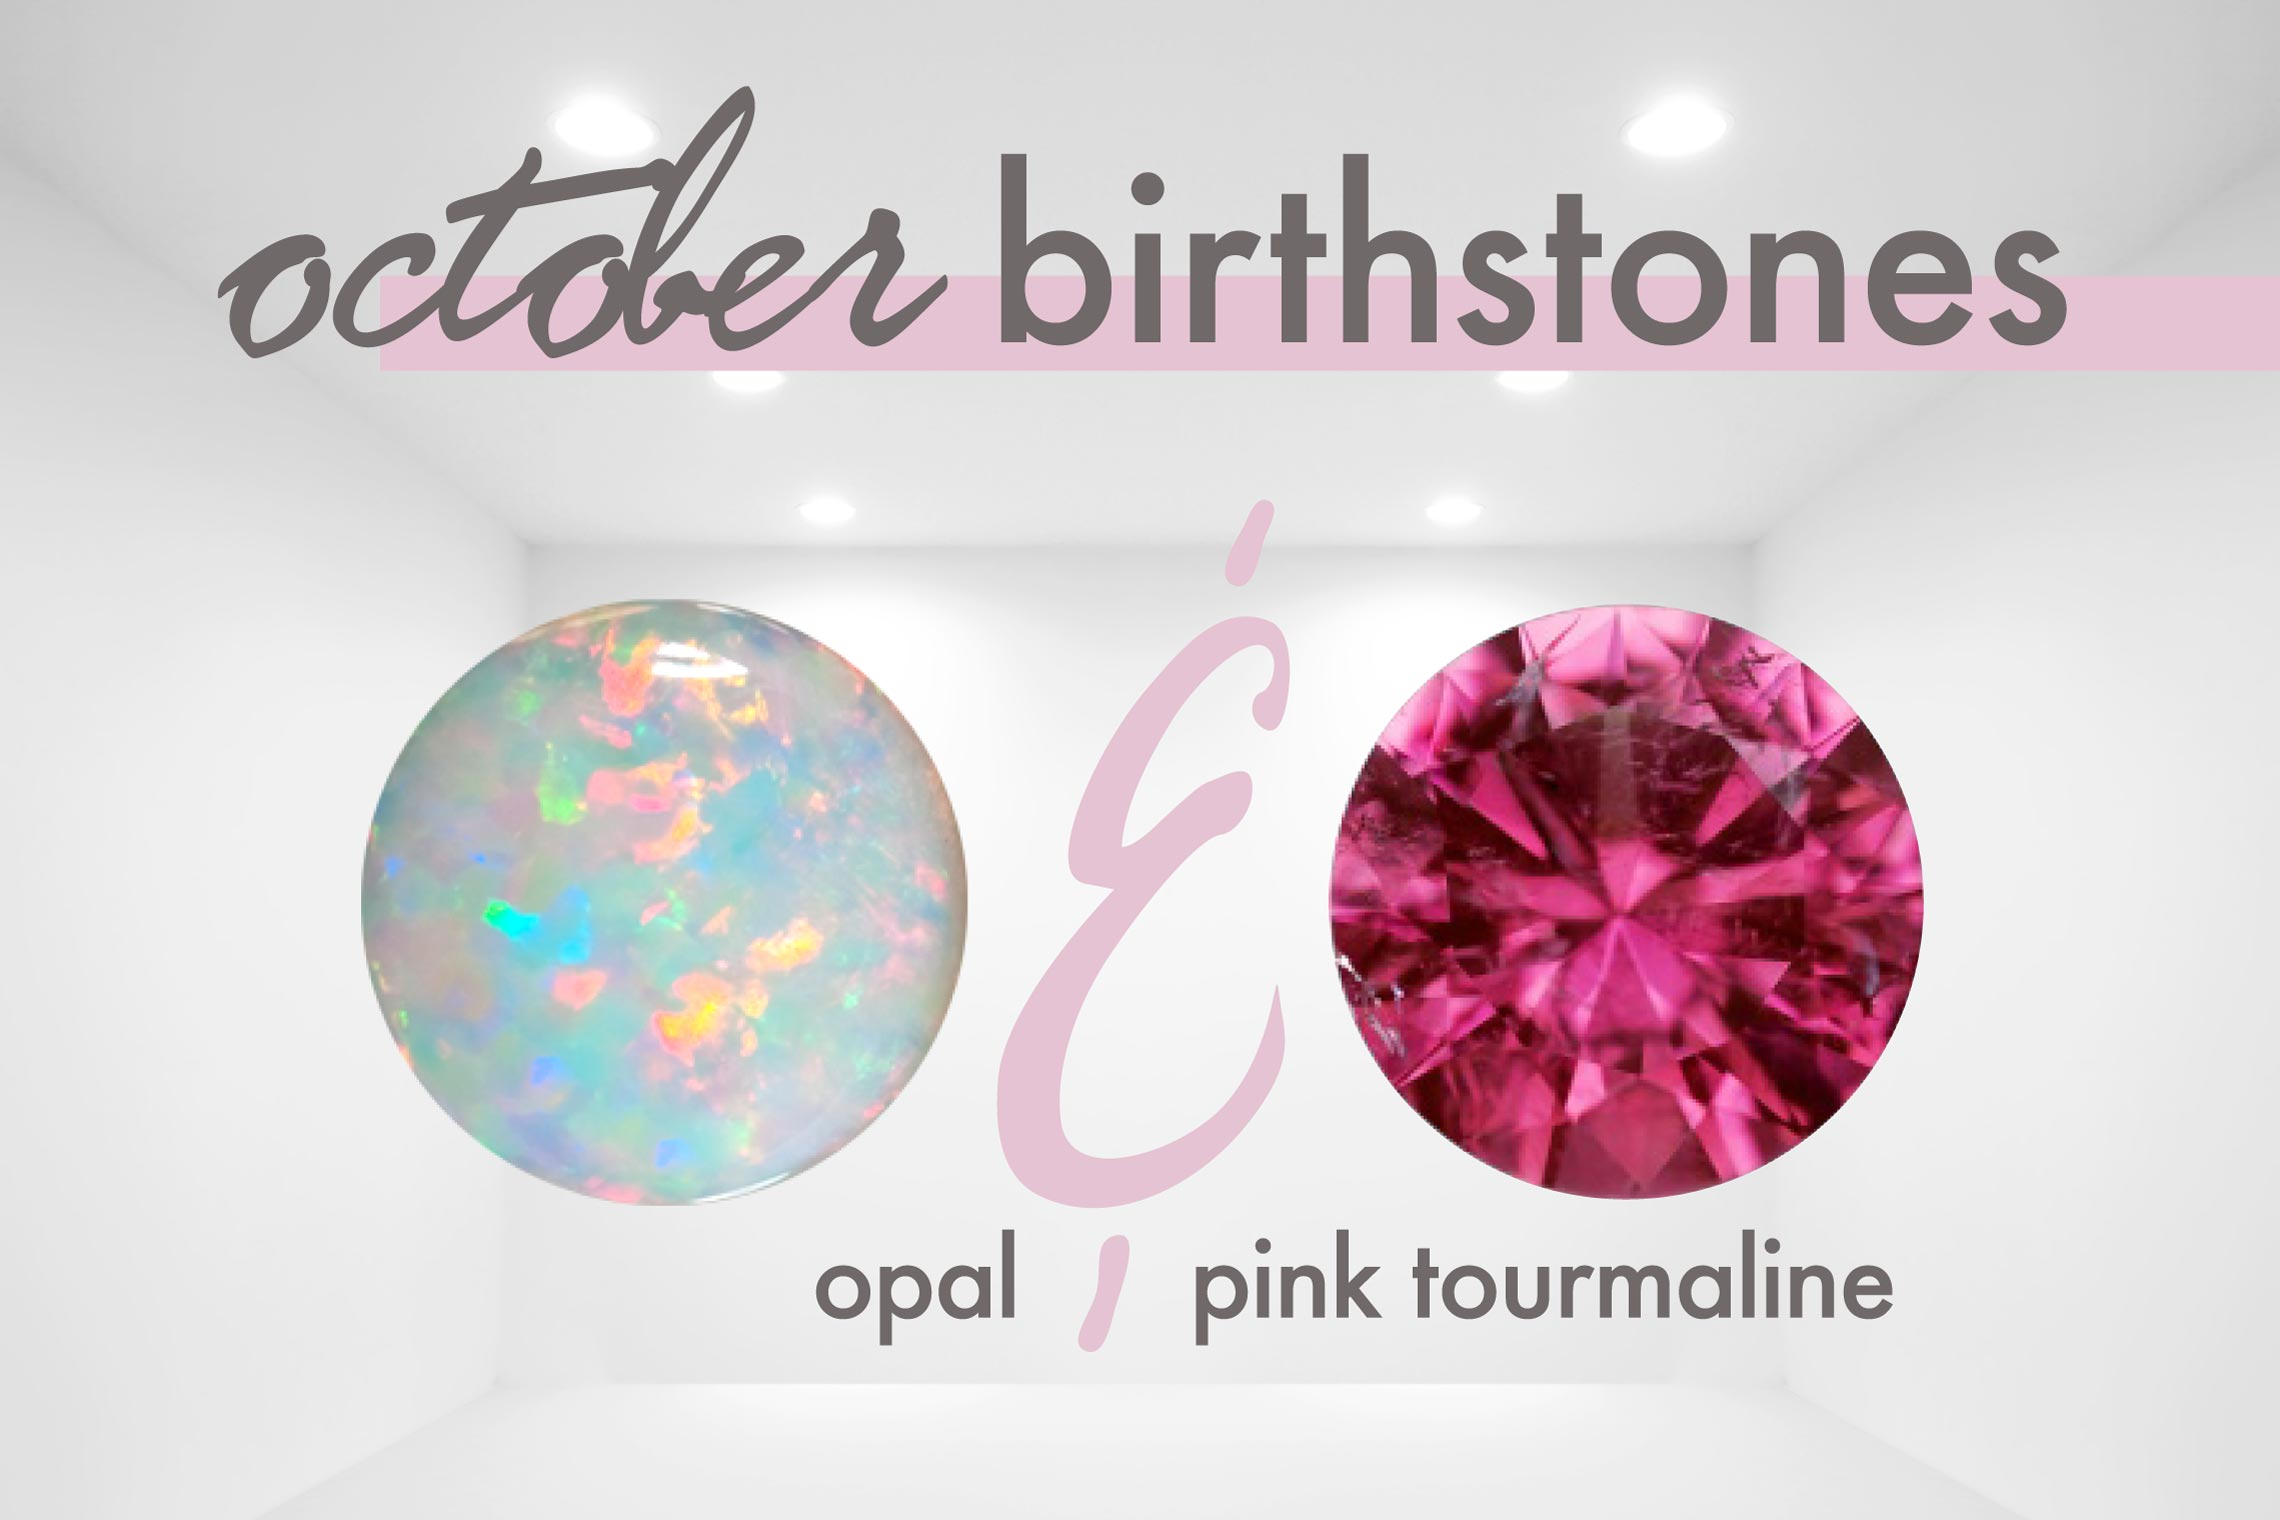 100+ [ Opal October ] | October Birthstone History Meaning ...